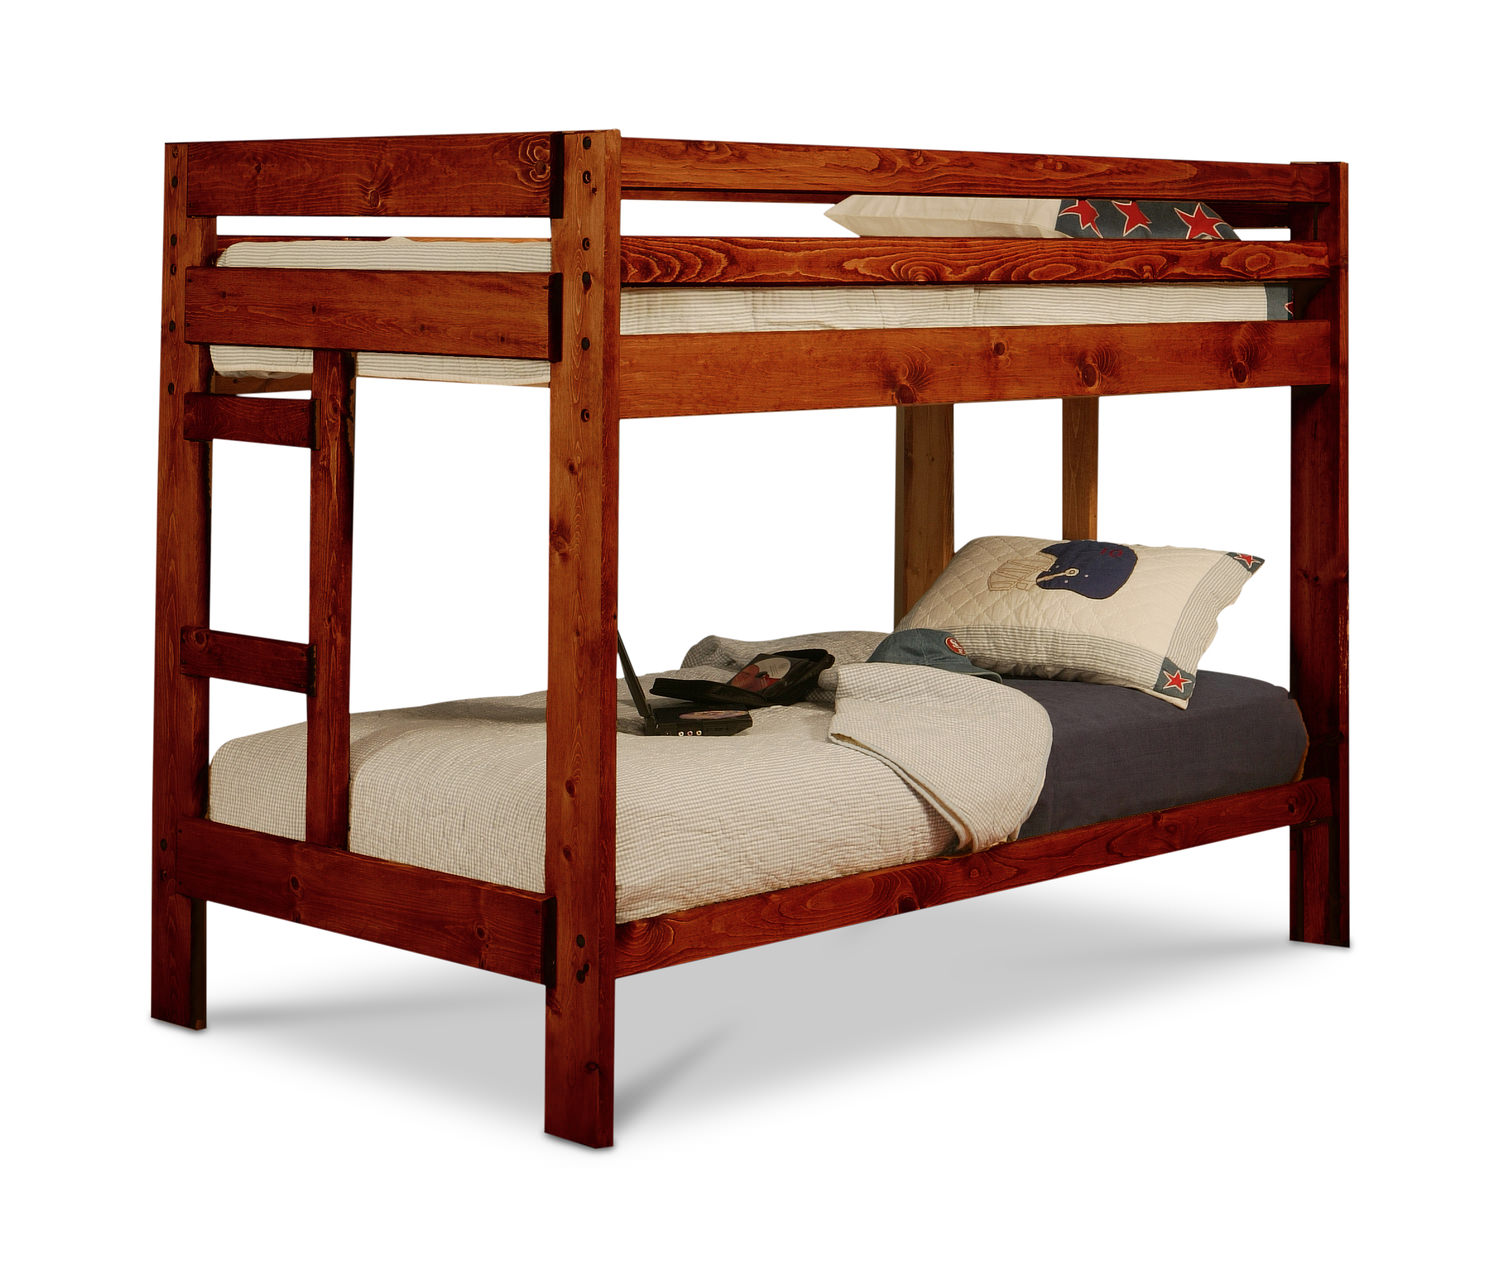 sedona twin over twin bunk bed - Twin Bunk Bed Frame